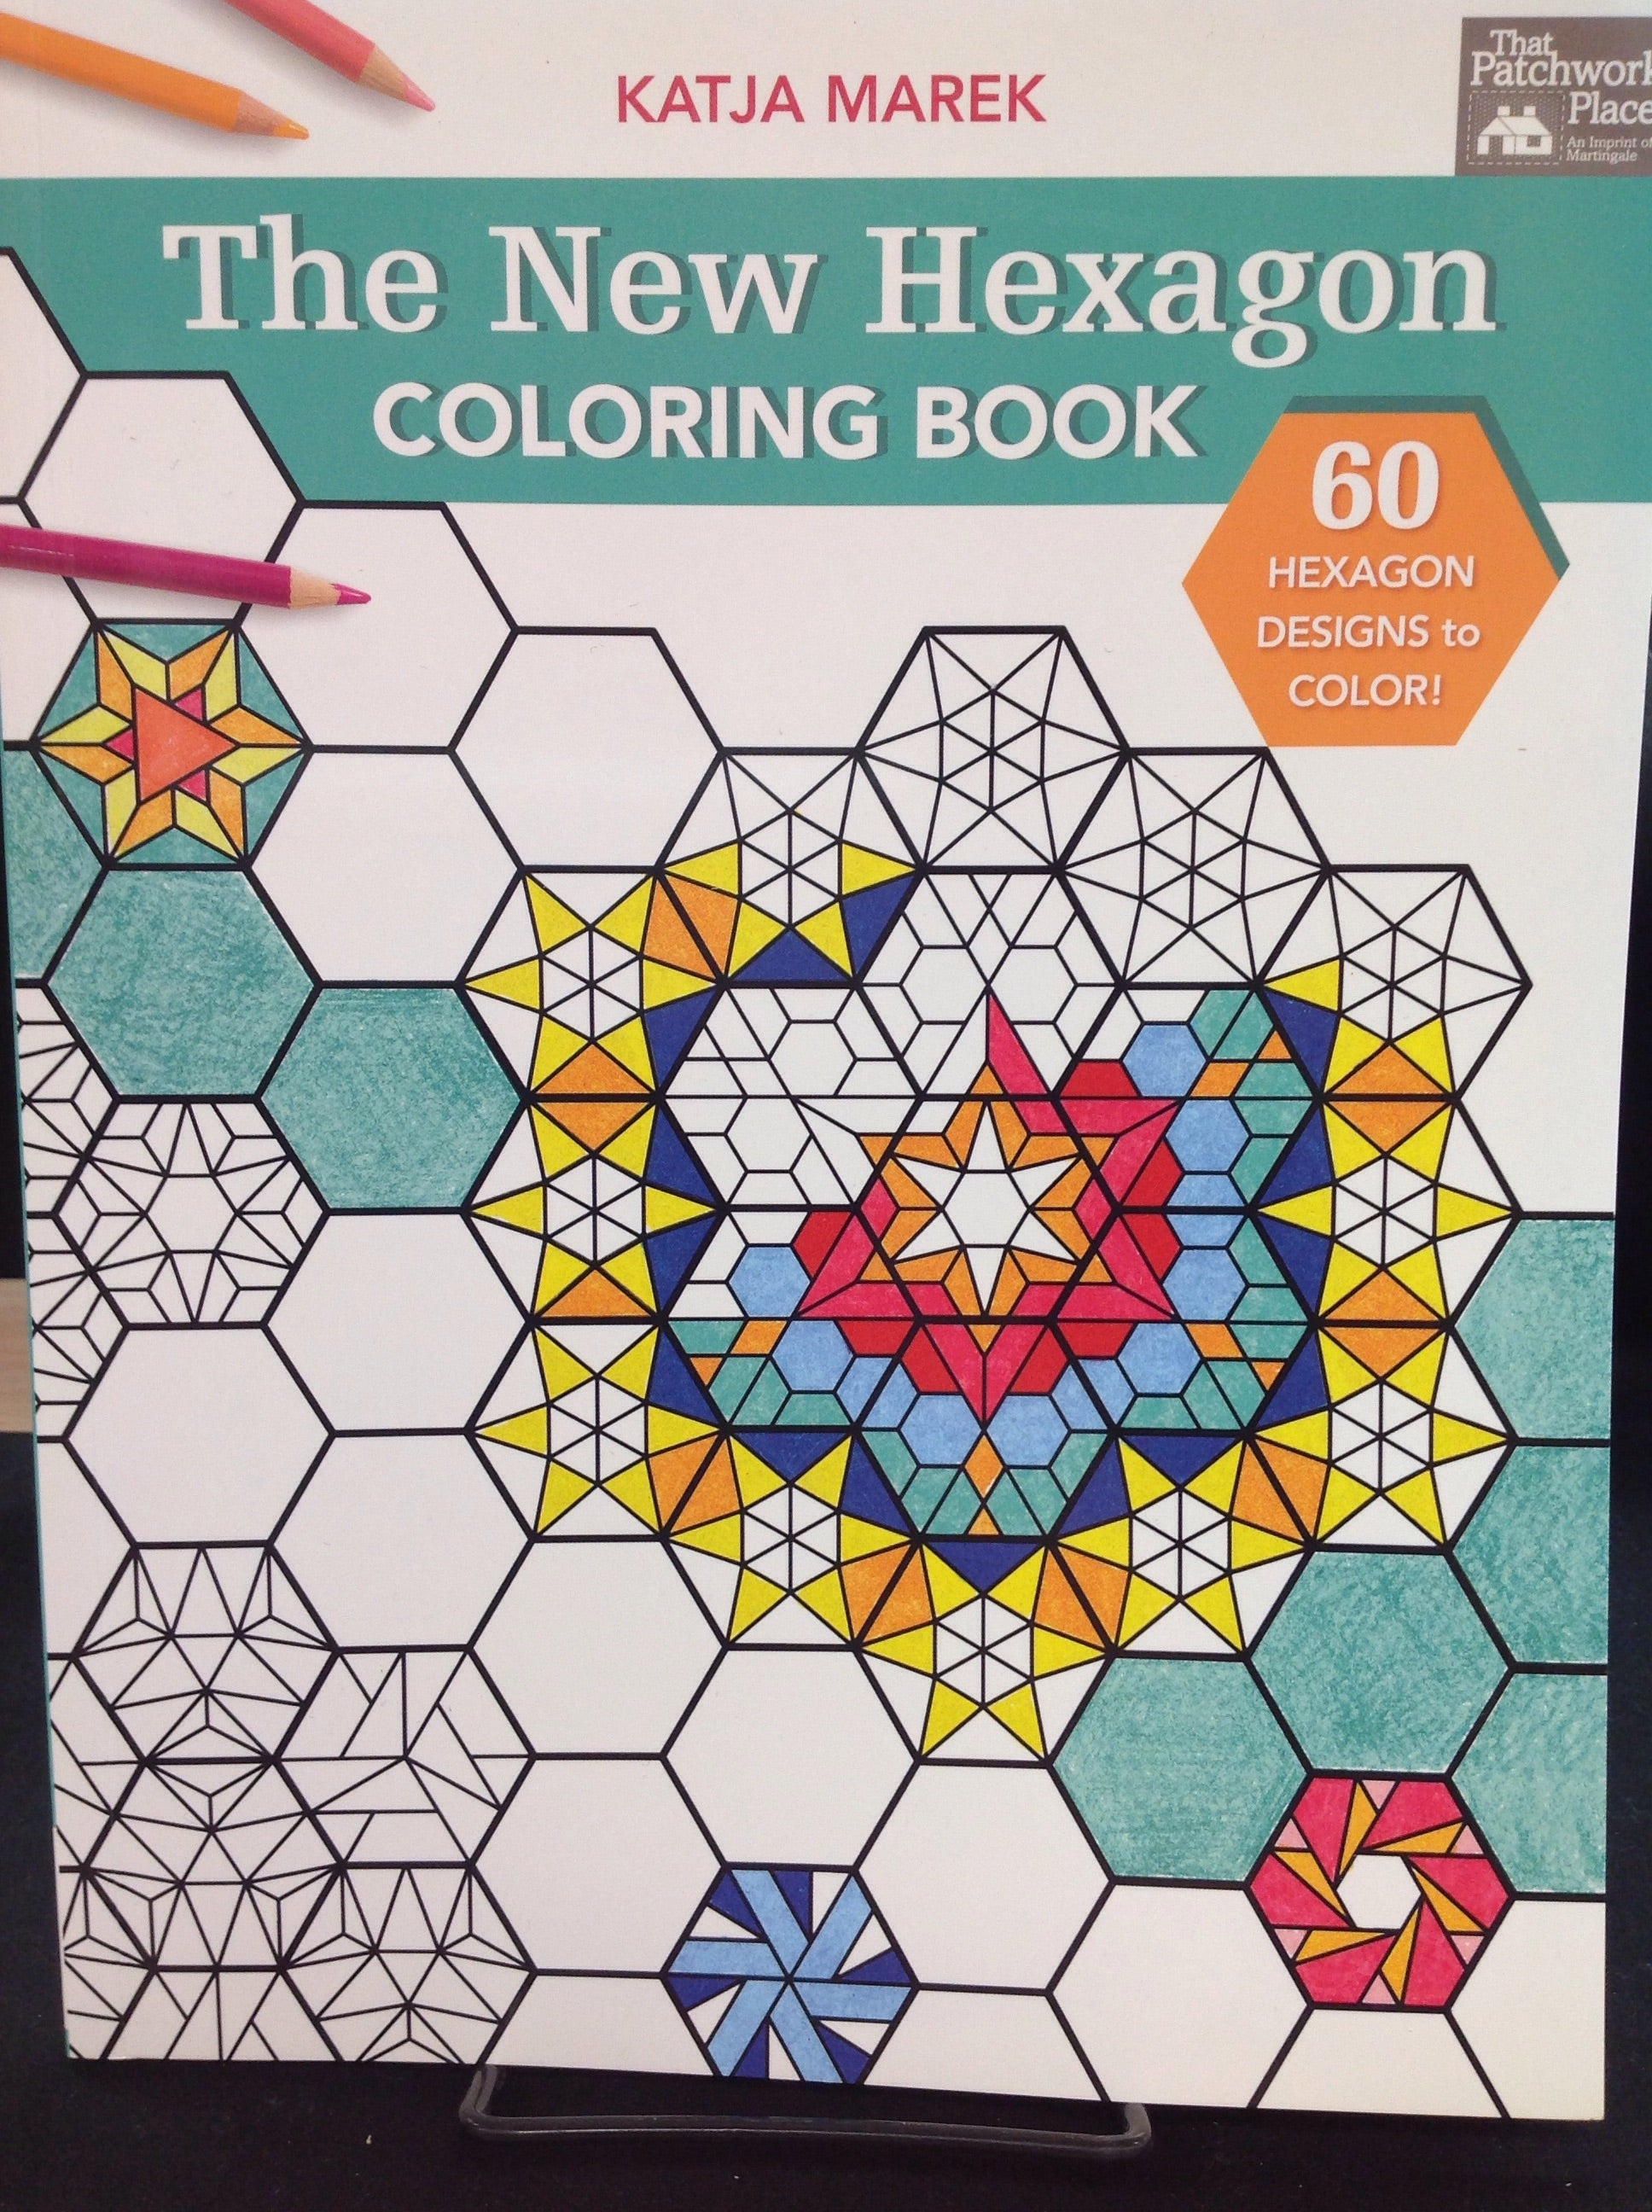 The New Hexagon Colouring Book - Katja Marek